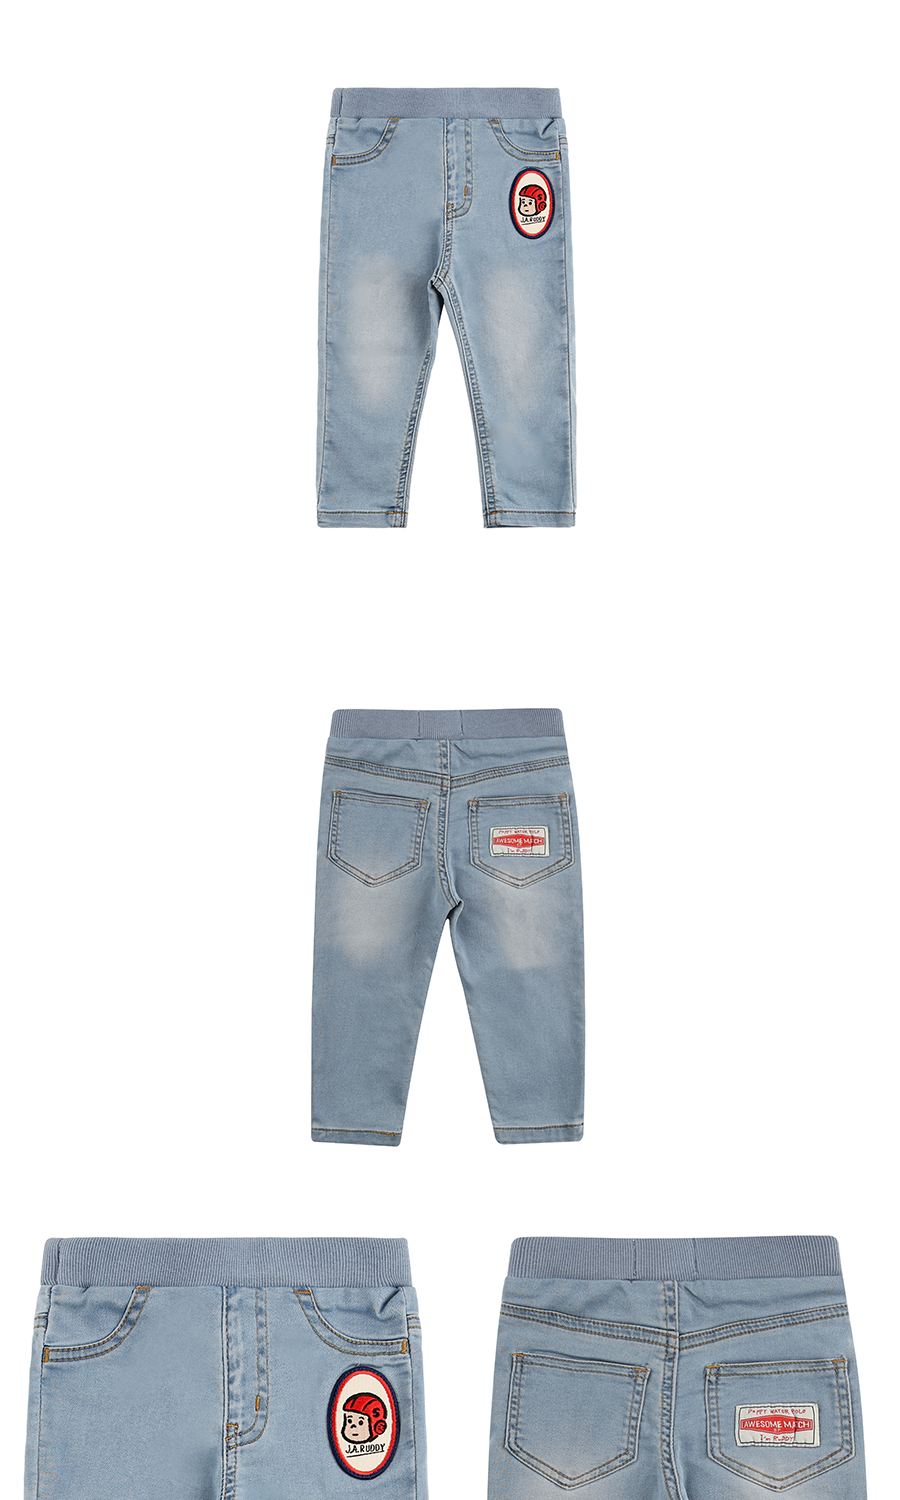 Ruddy baby denim pants 상세 이미지